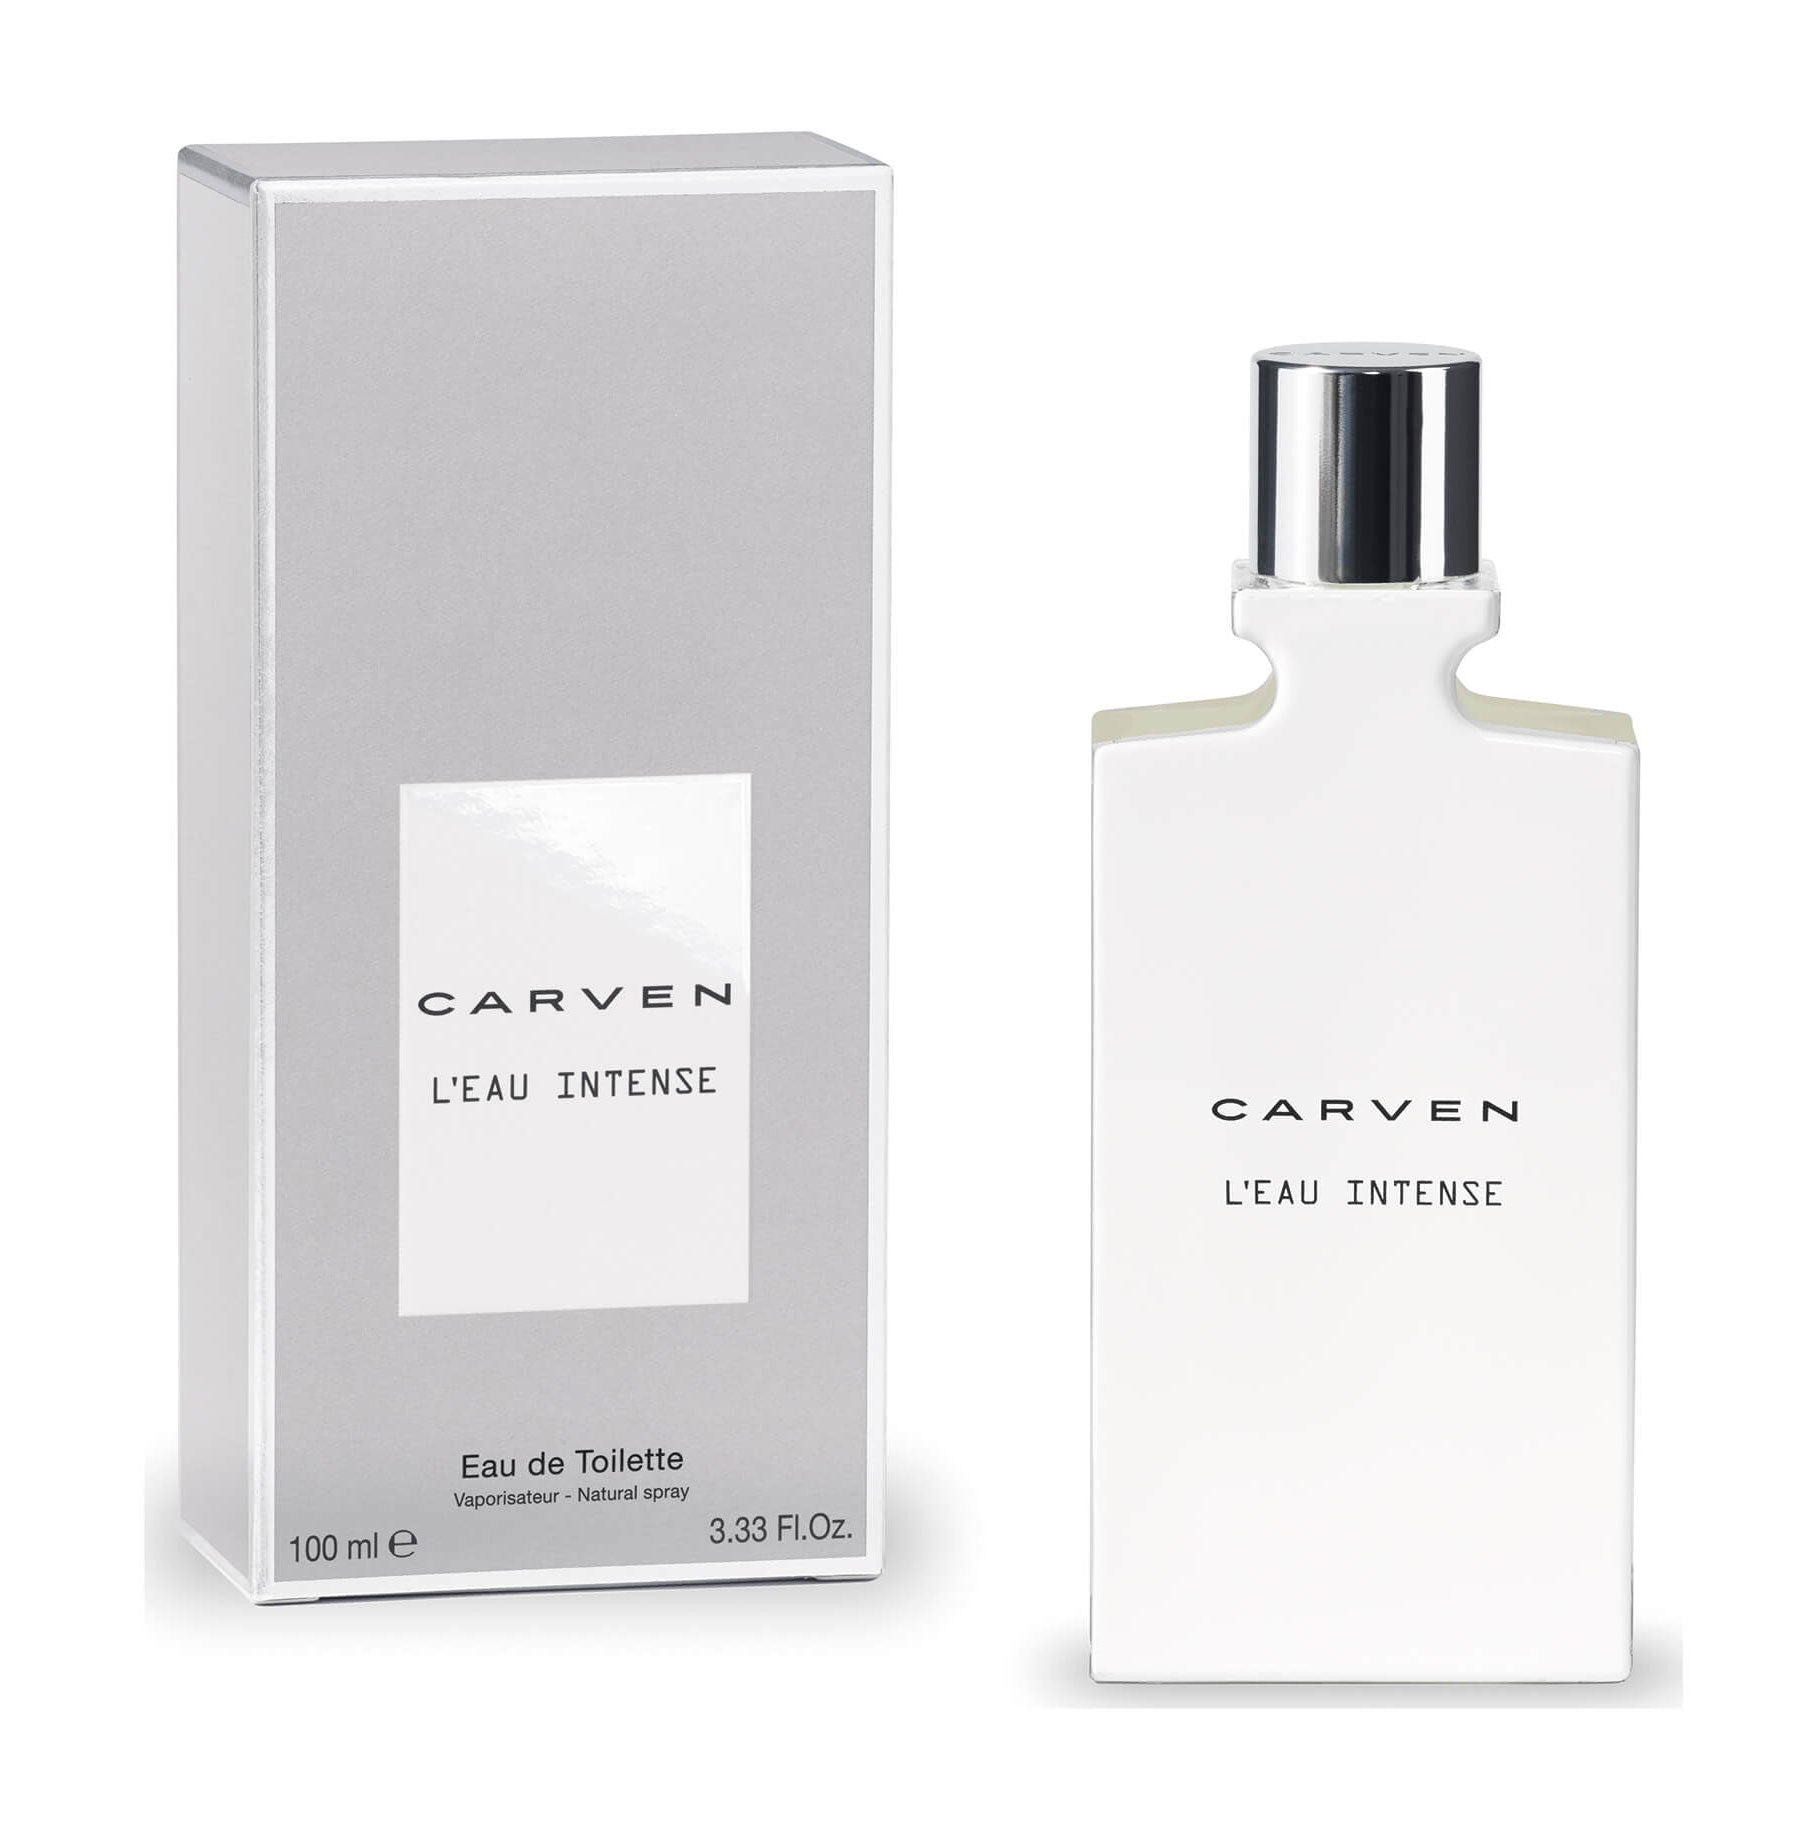 Carven L'eau Intense Eau De Toilette 100ml